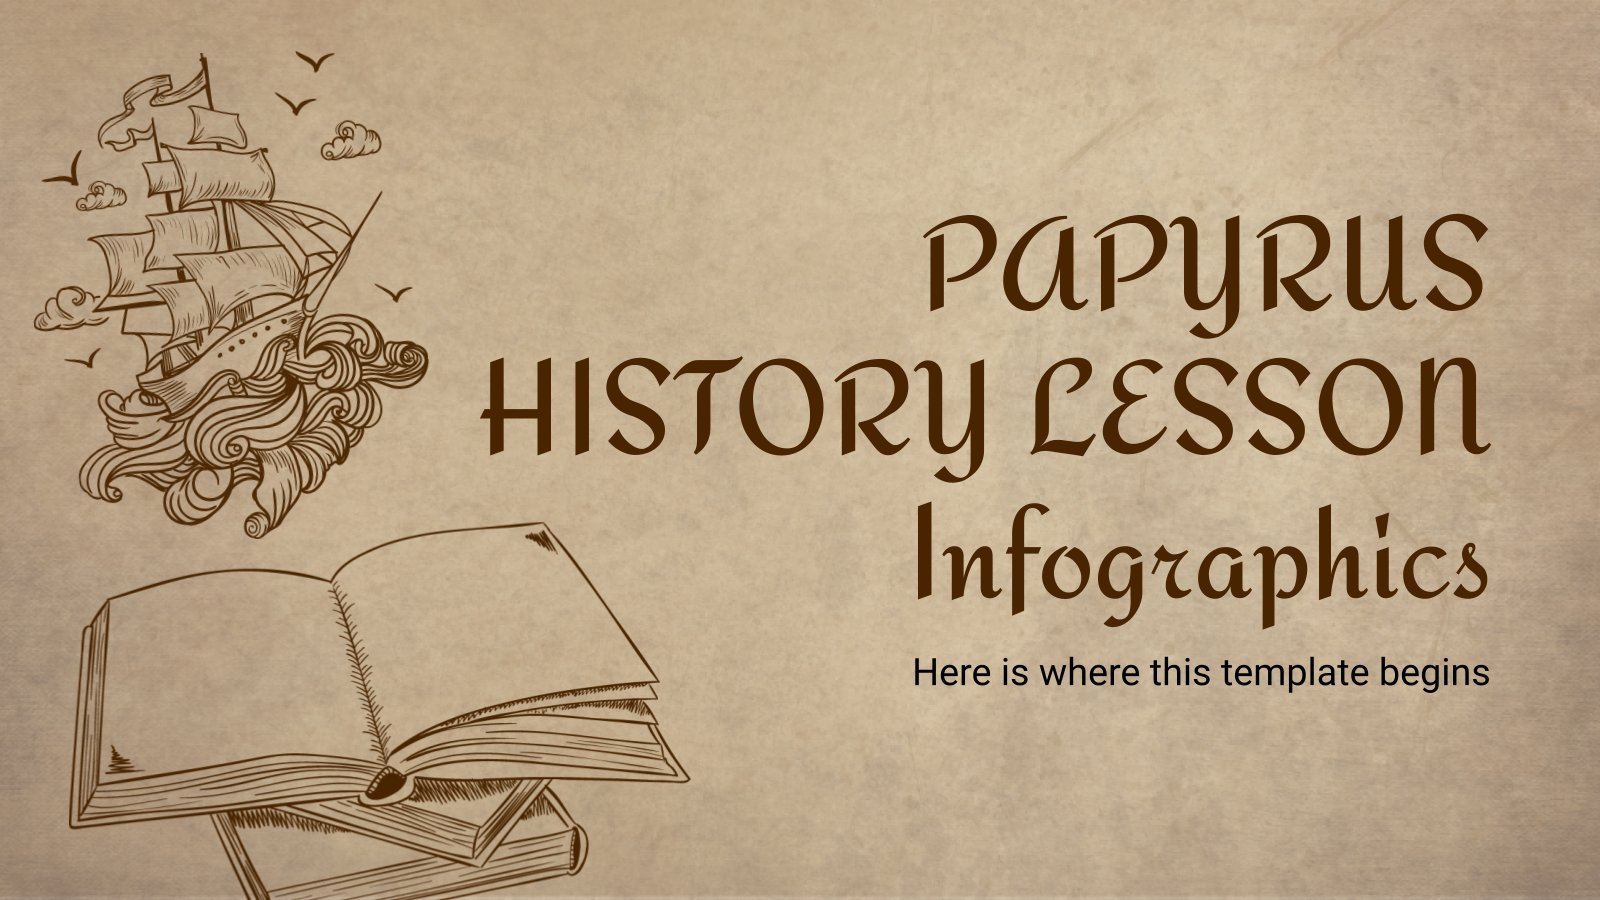 Papyrus History Lesson Infographics presentation template